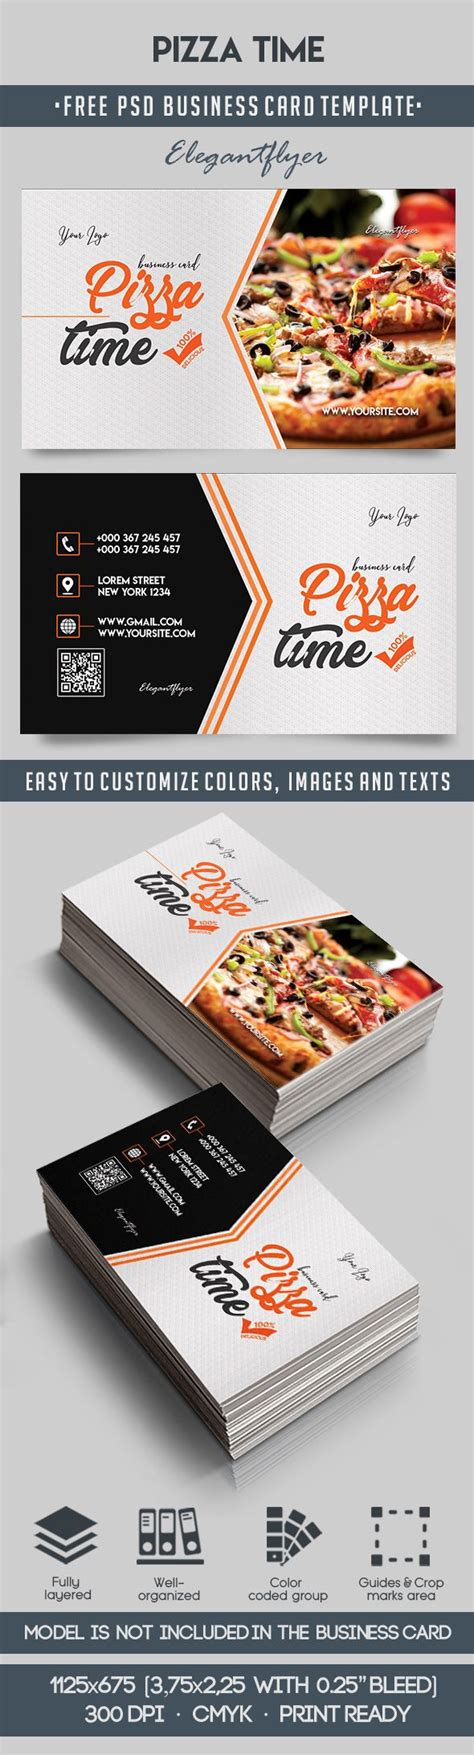 pizza business card template pizza time free business card templates psd by